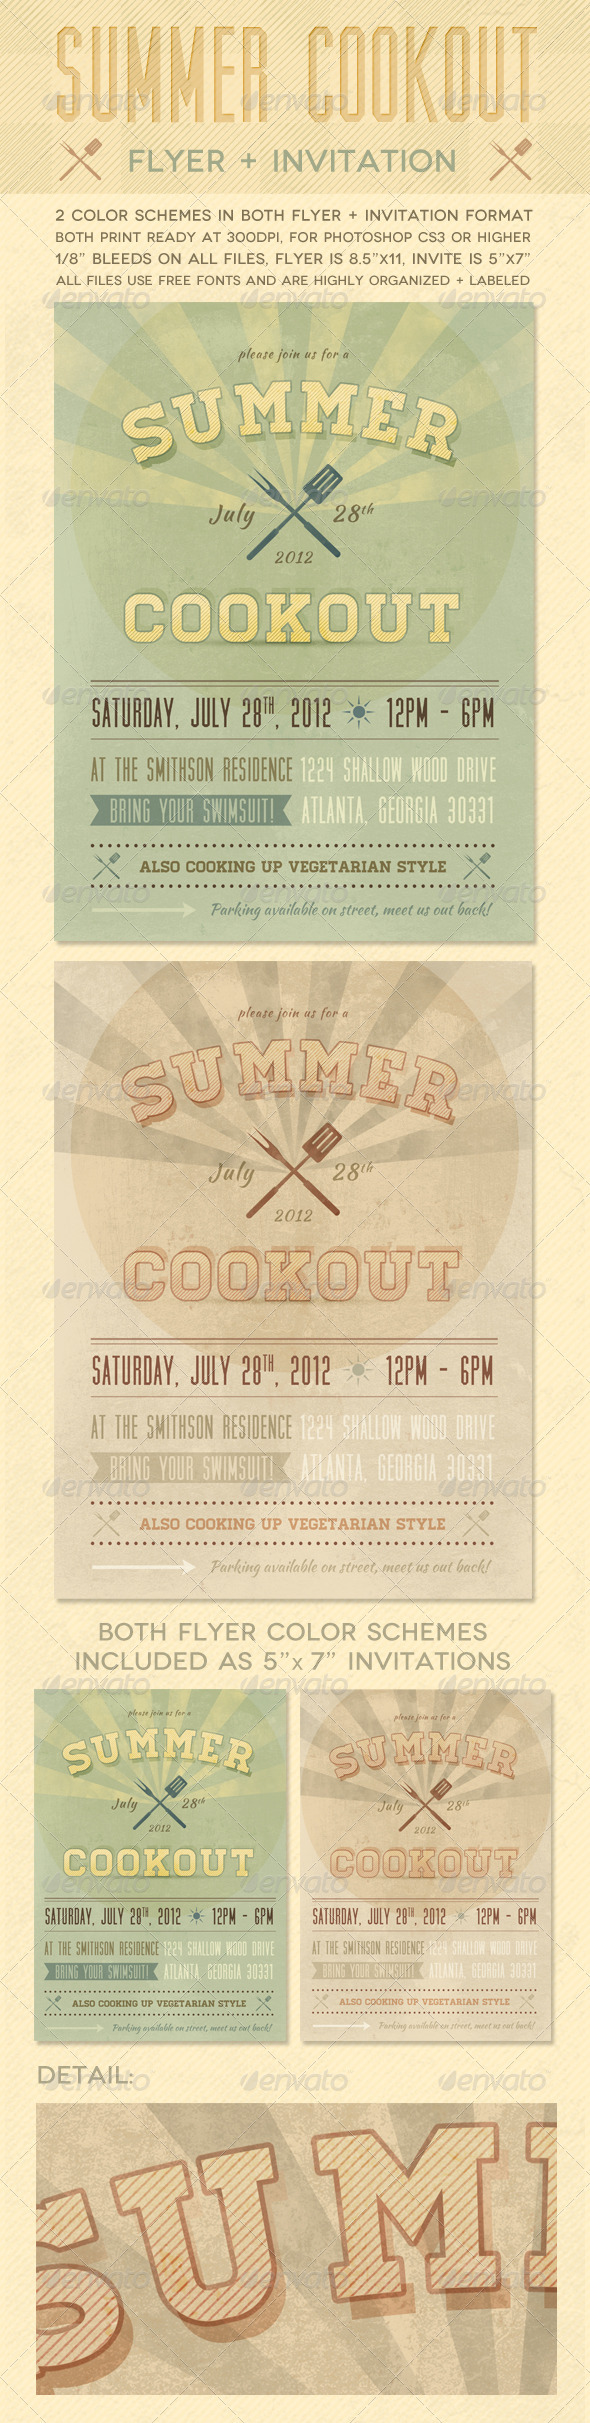 Summer Cookout Flyer & Invite